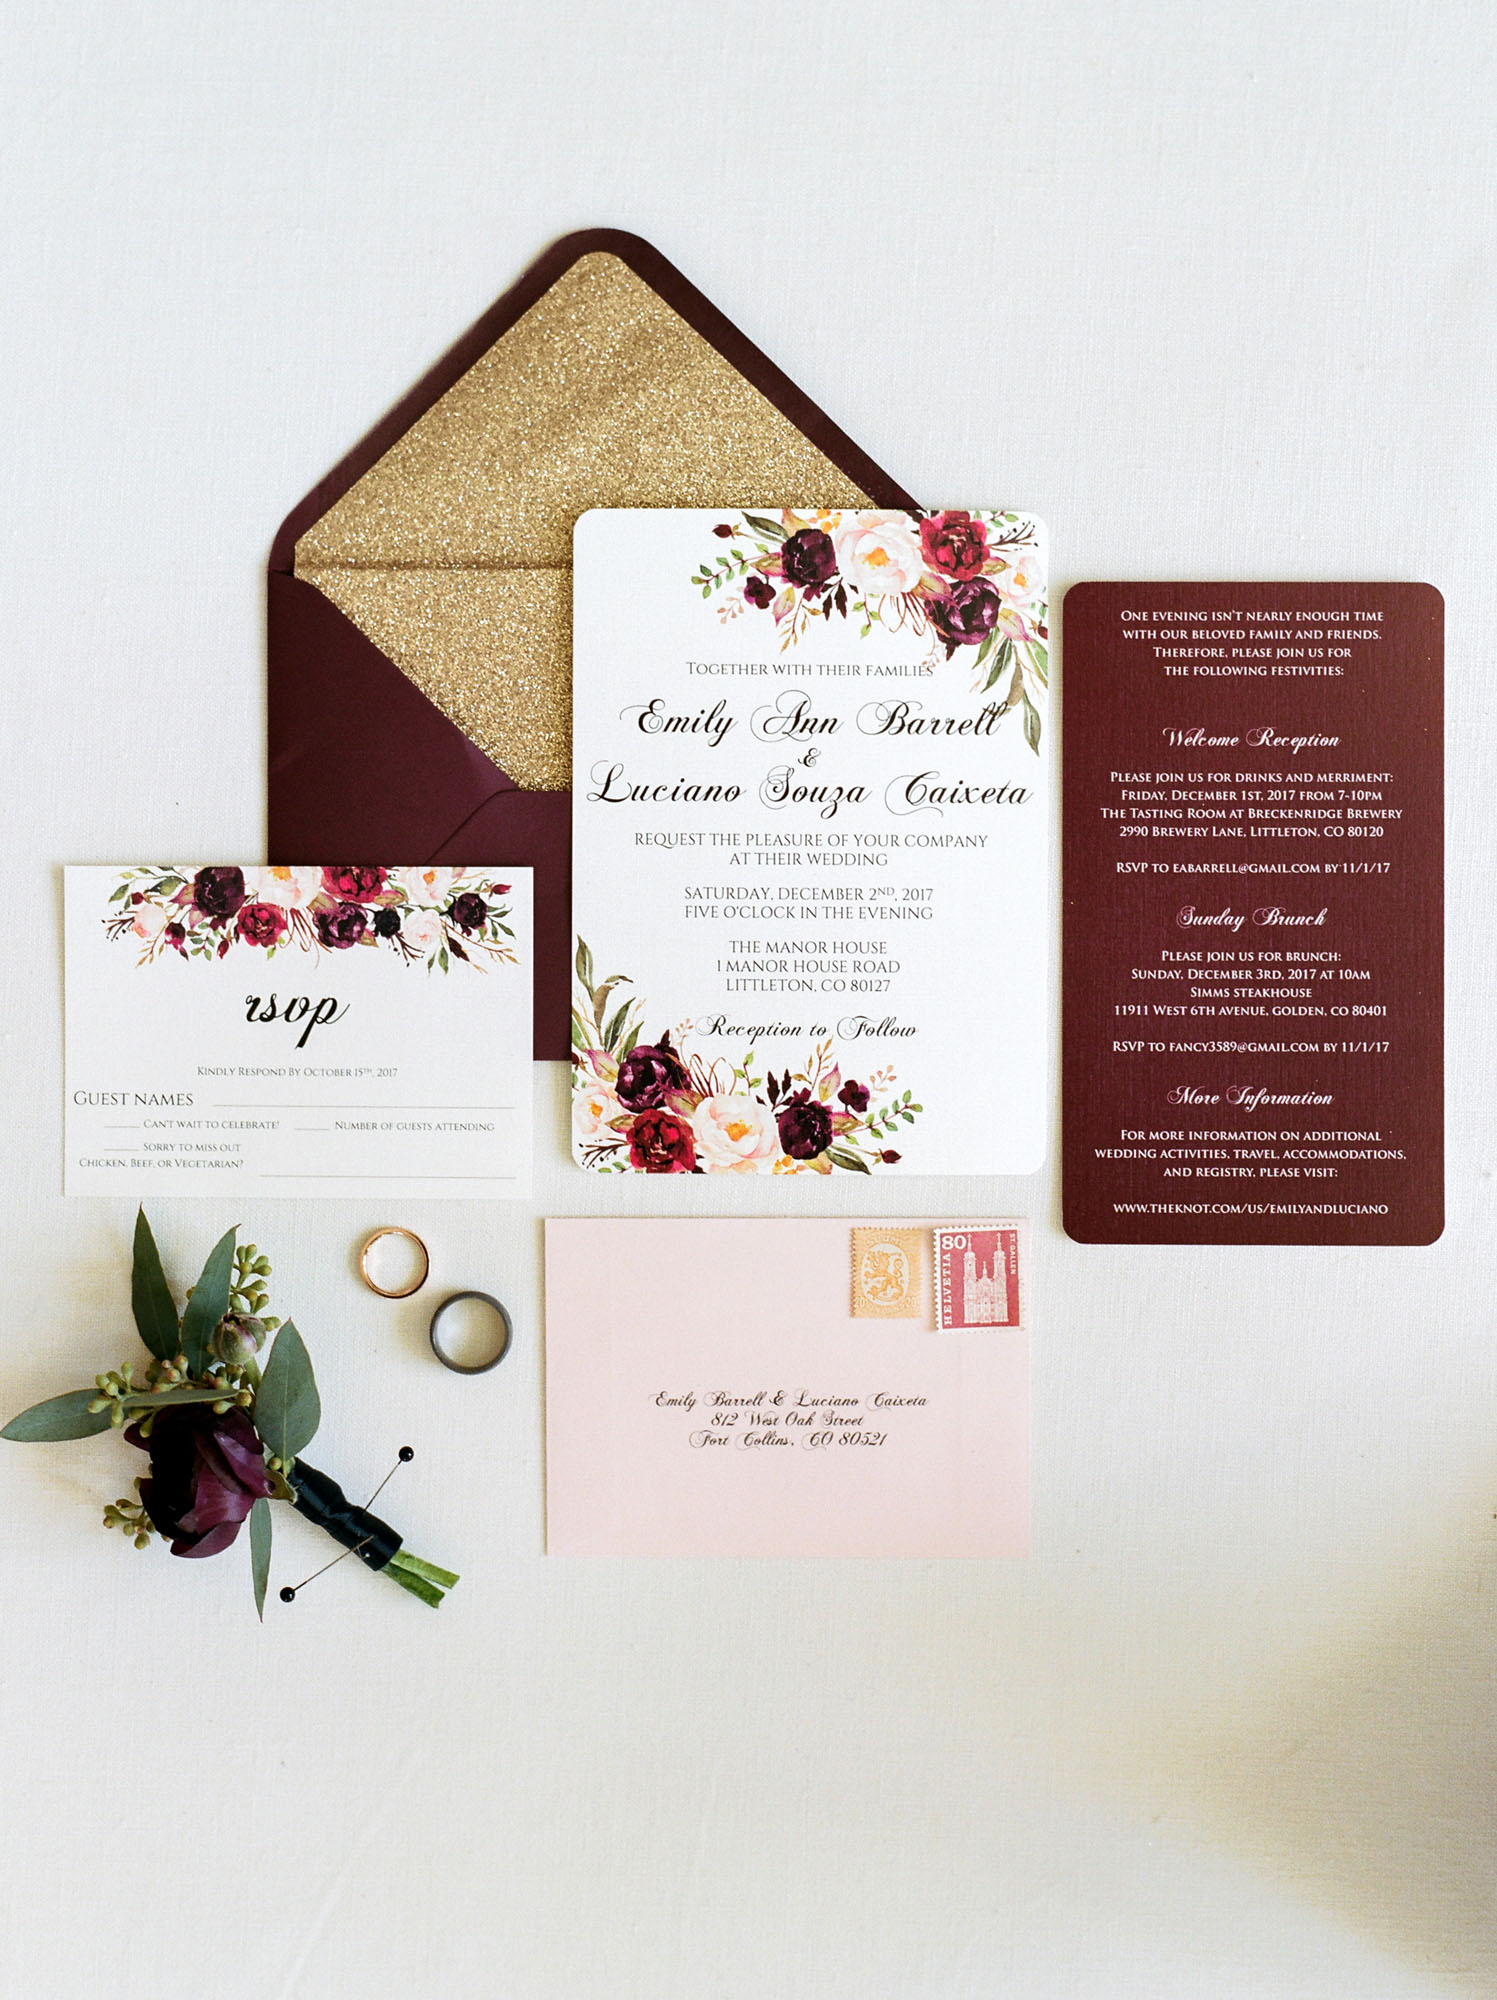 Wedding Invitation with Jewel Tones